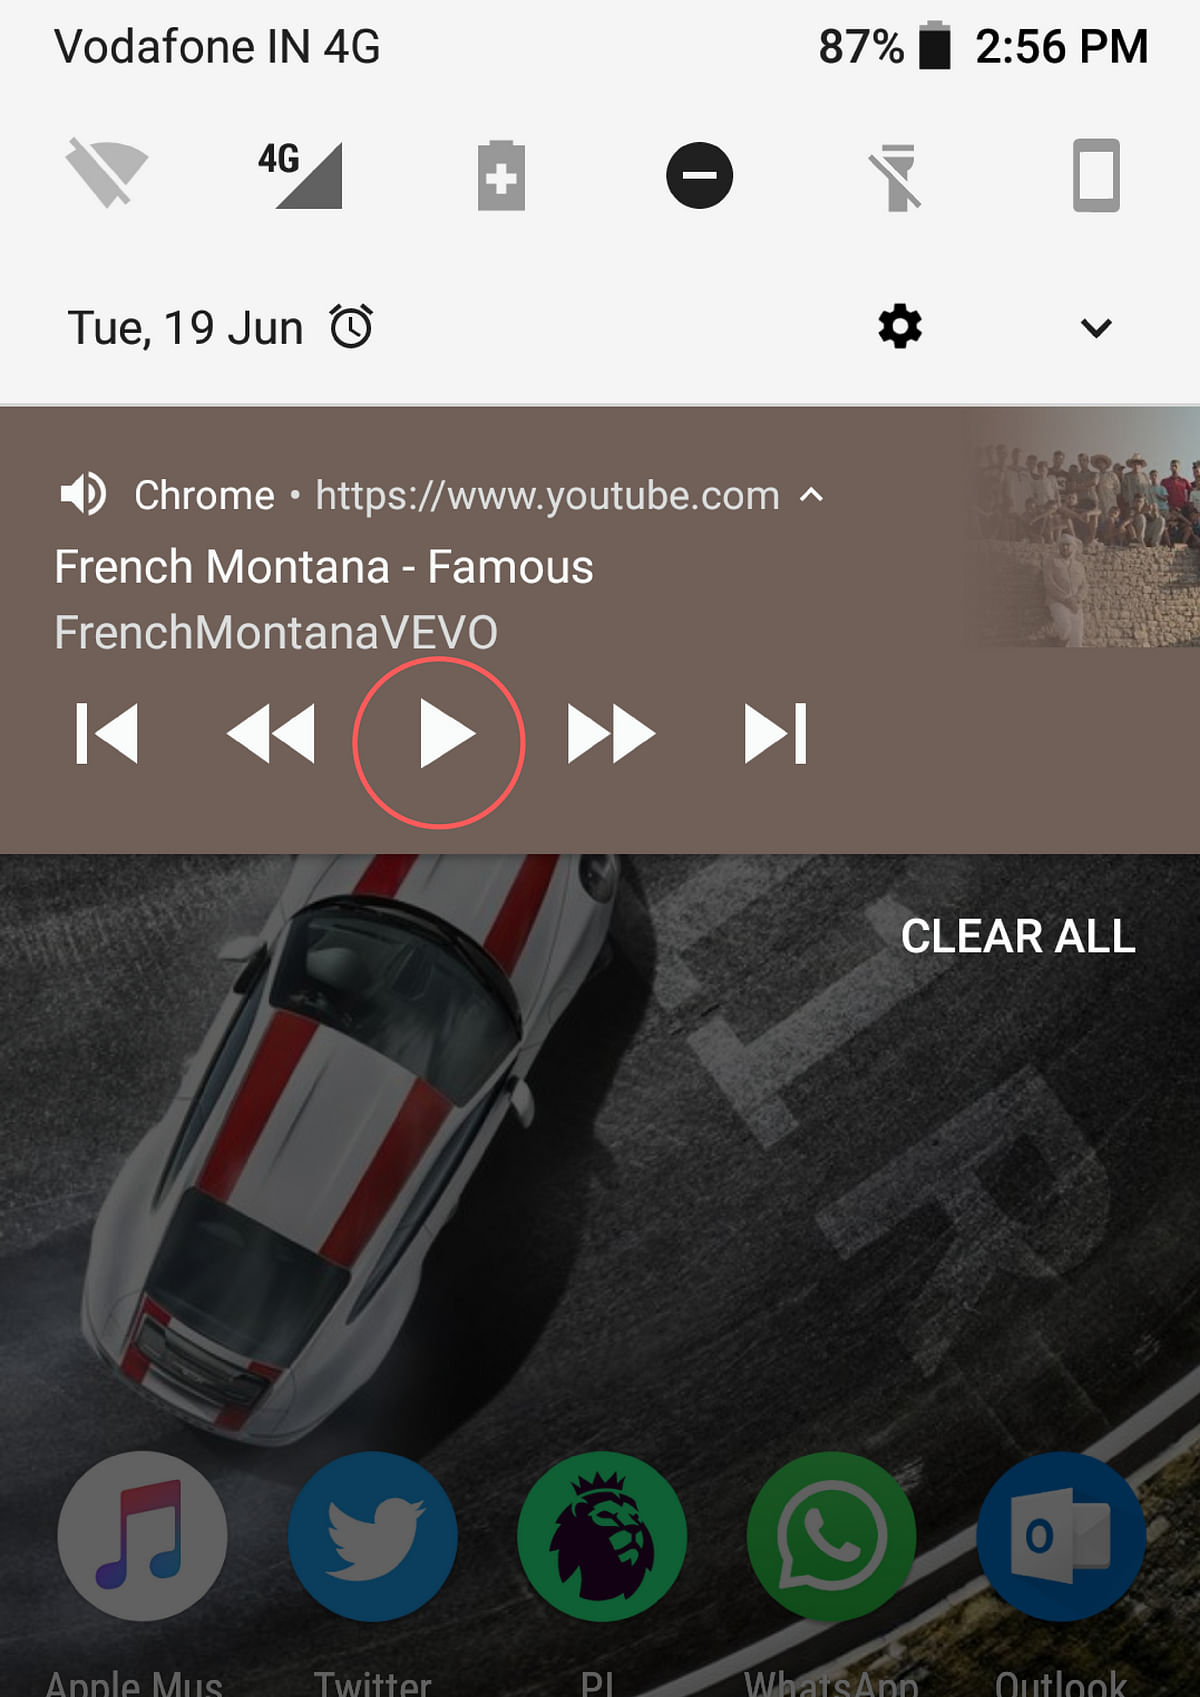 Hit play (highlighted) and enjoy your music without the interruption of screen lock.